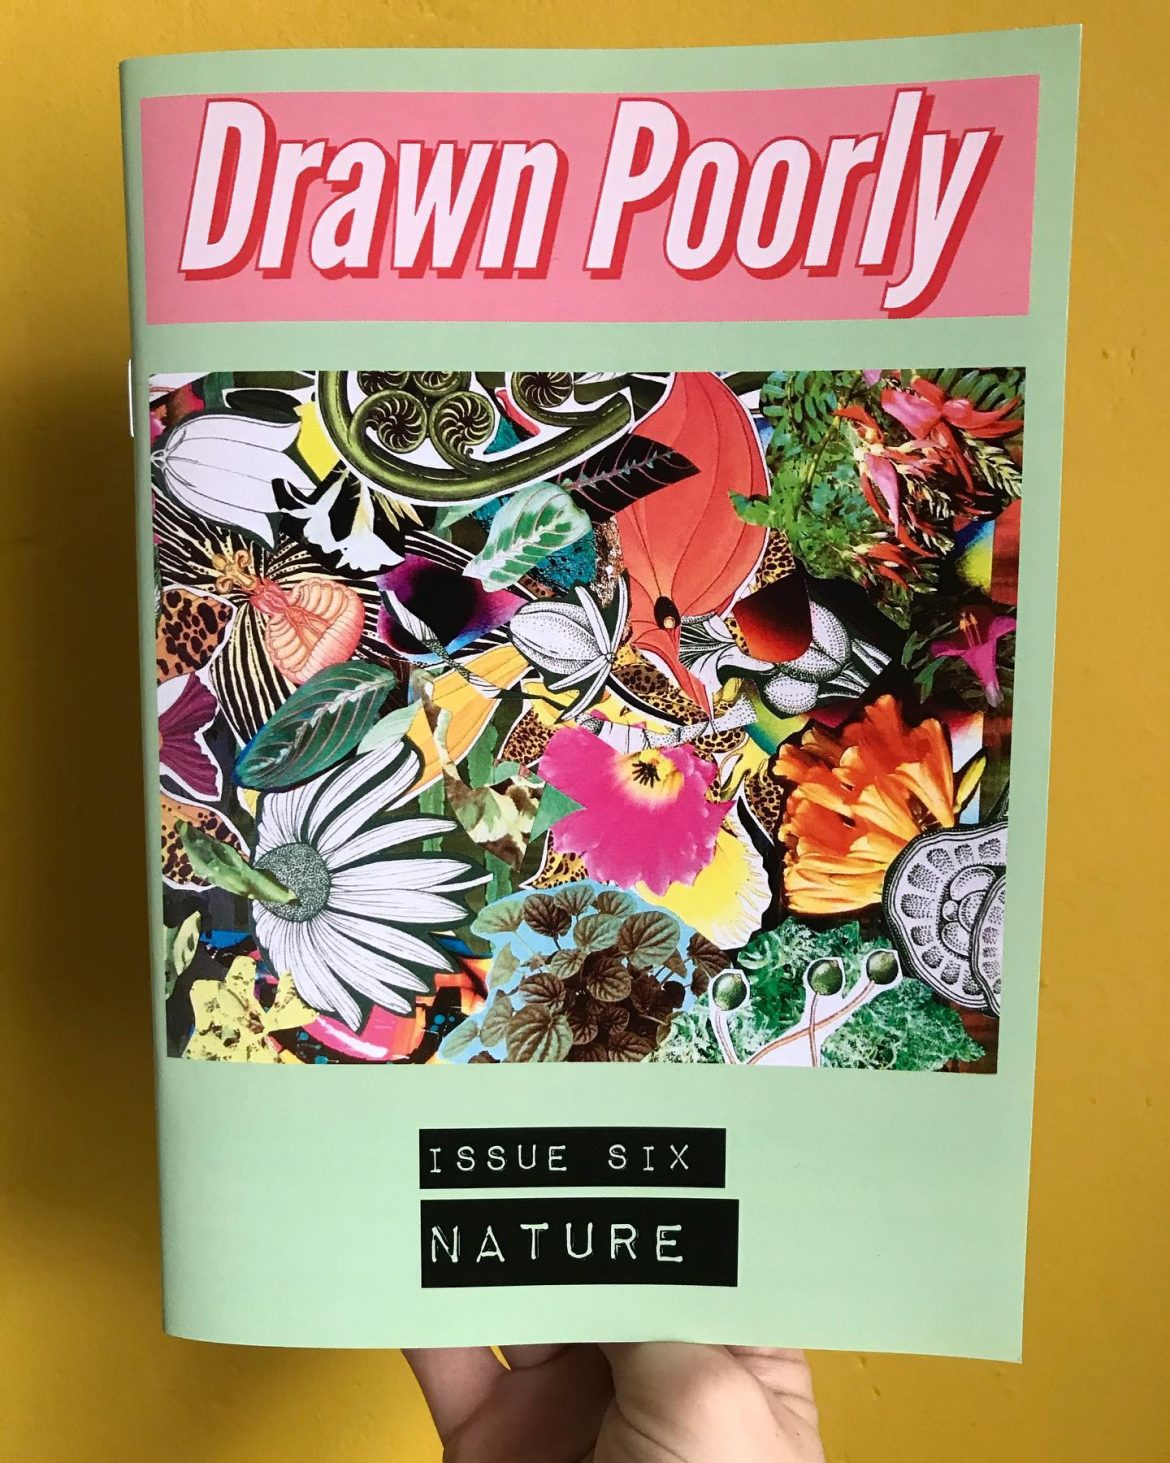 Drawn Poorly Issue #6 – Nature